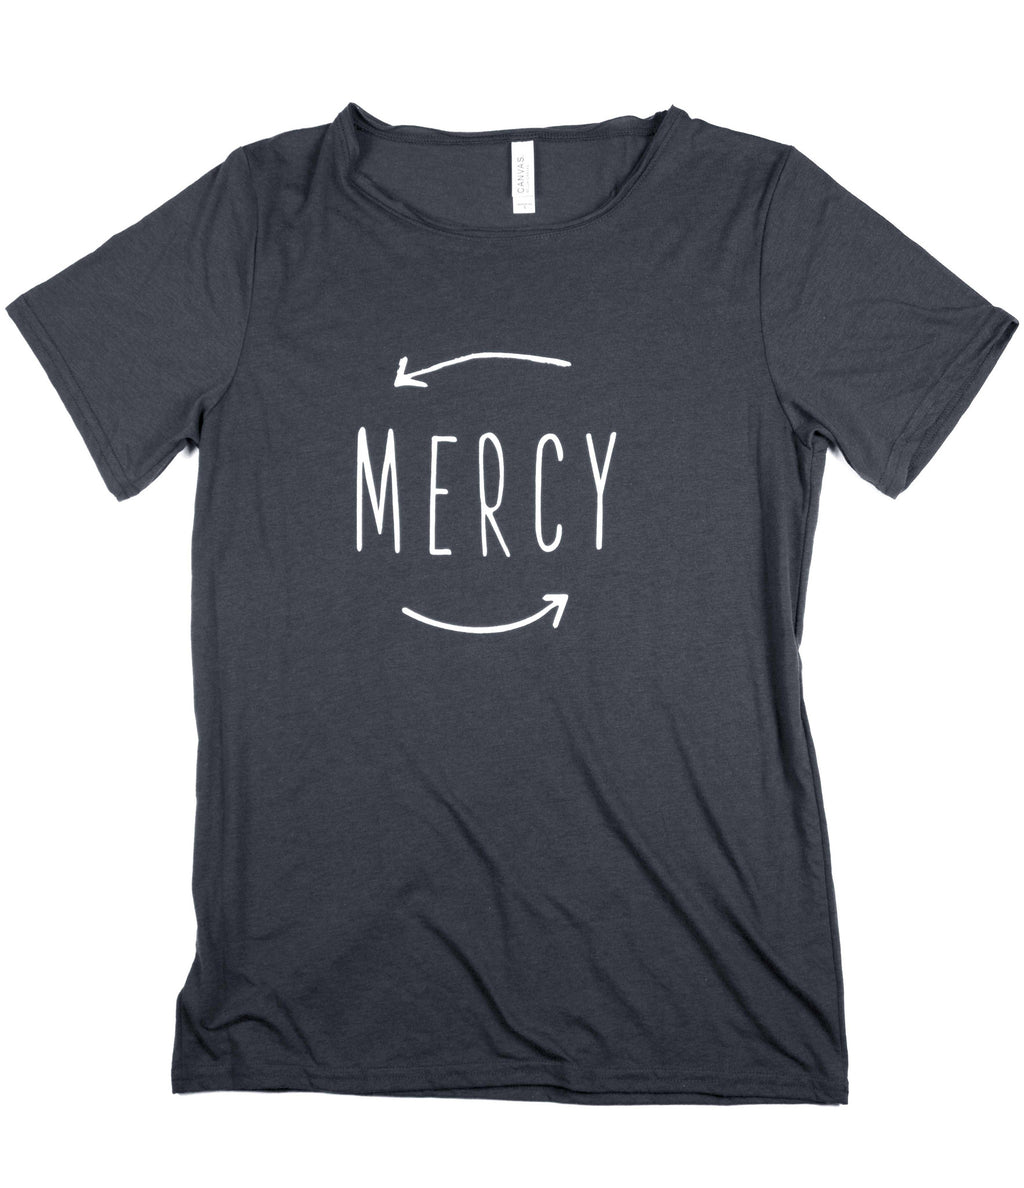 MERCY DARK GREY RAW NECK T-SHIRT